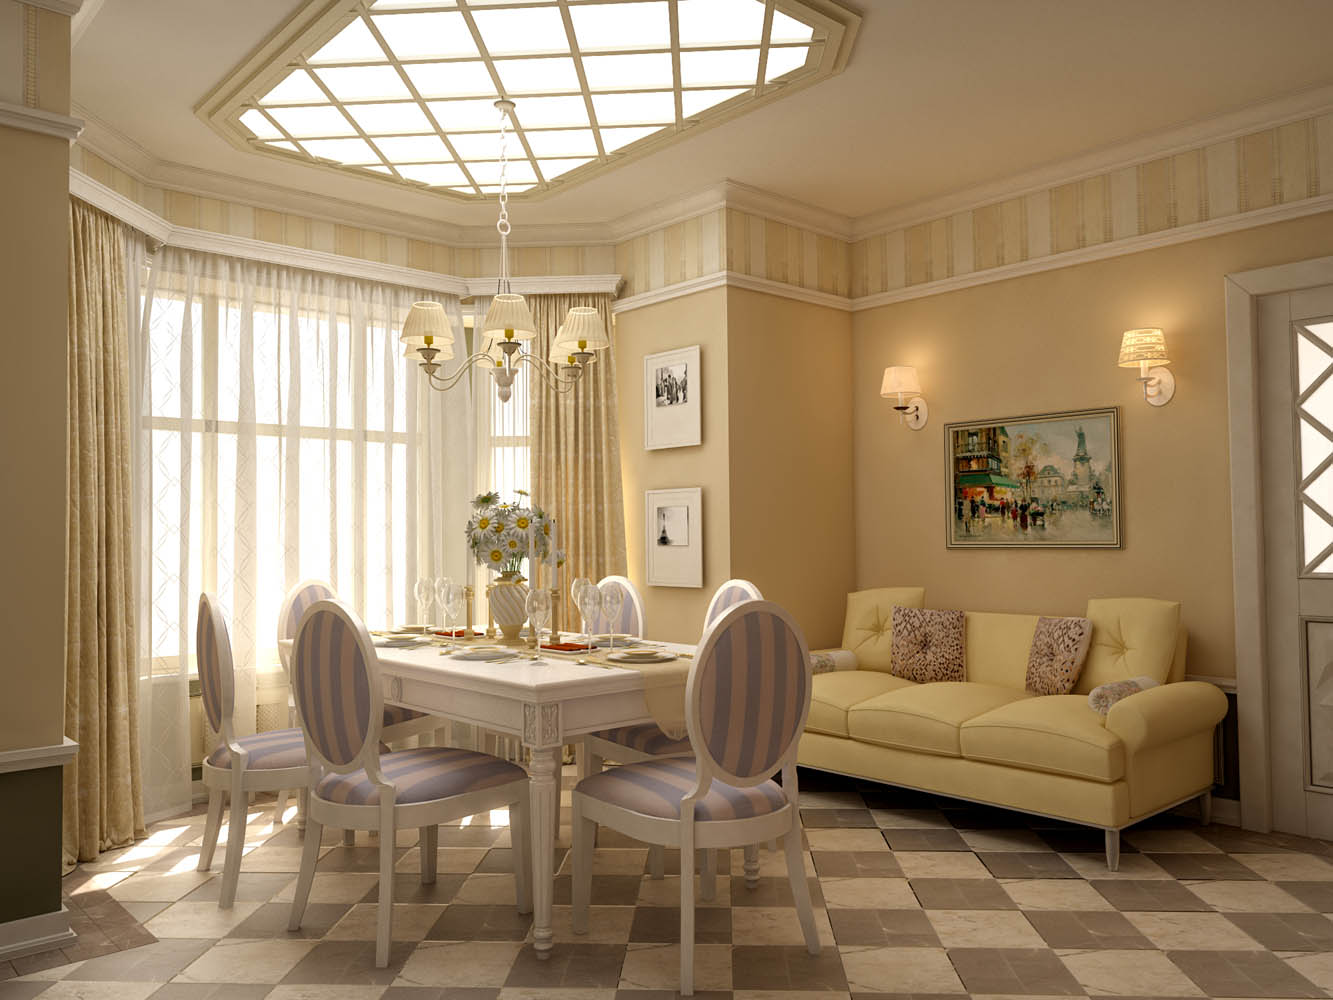 furnishings-in-the-french-style-07